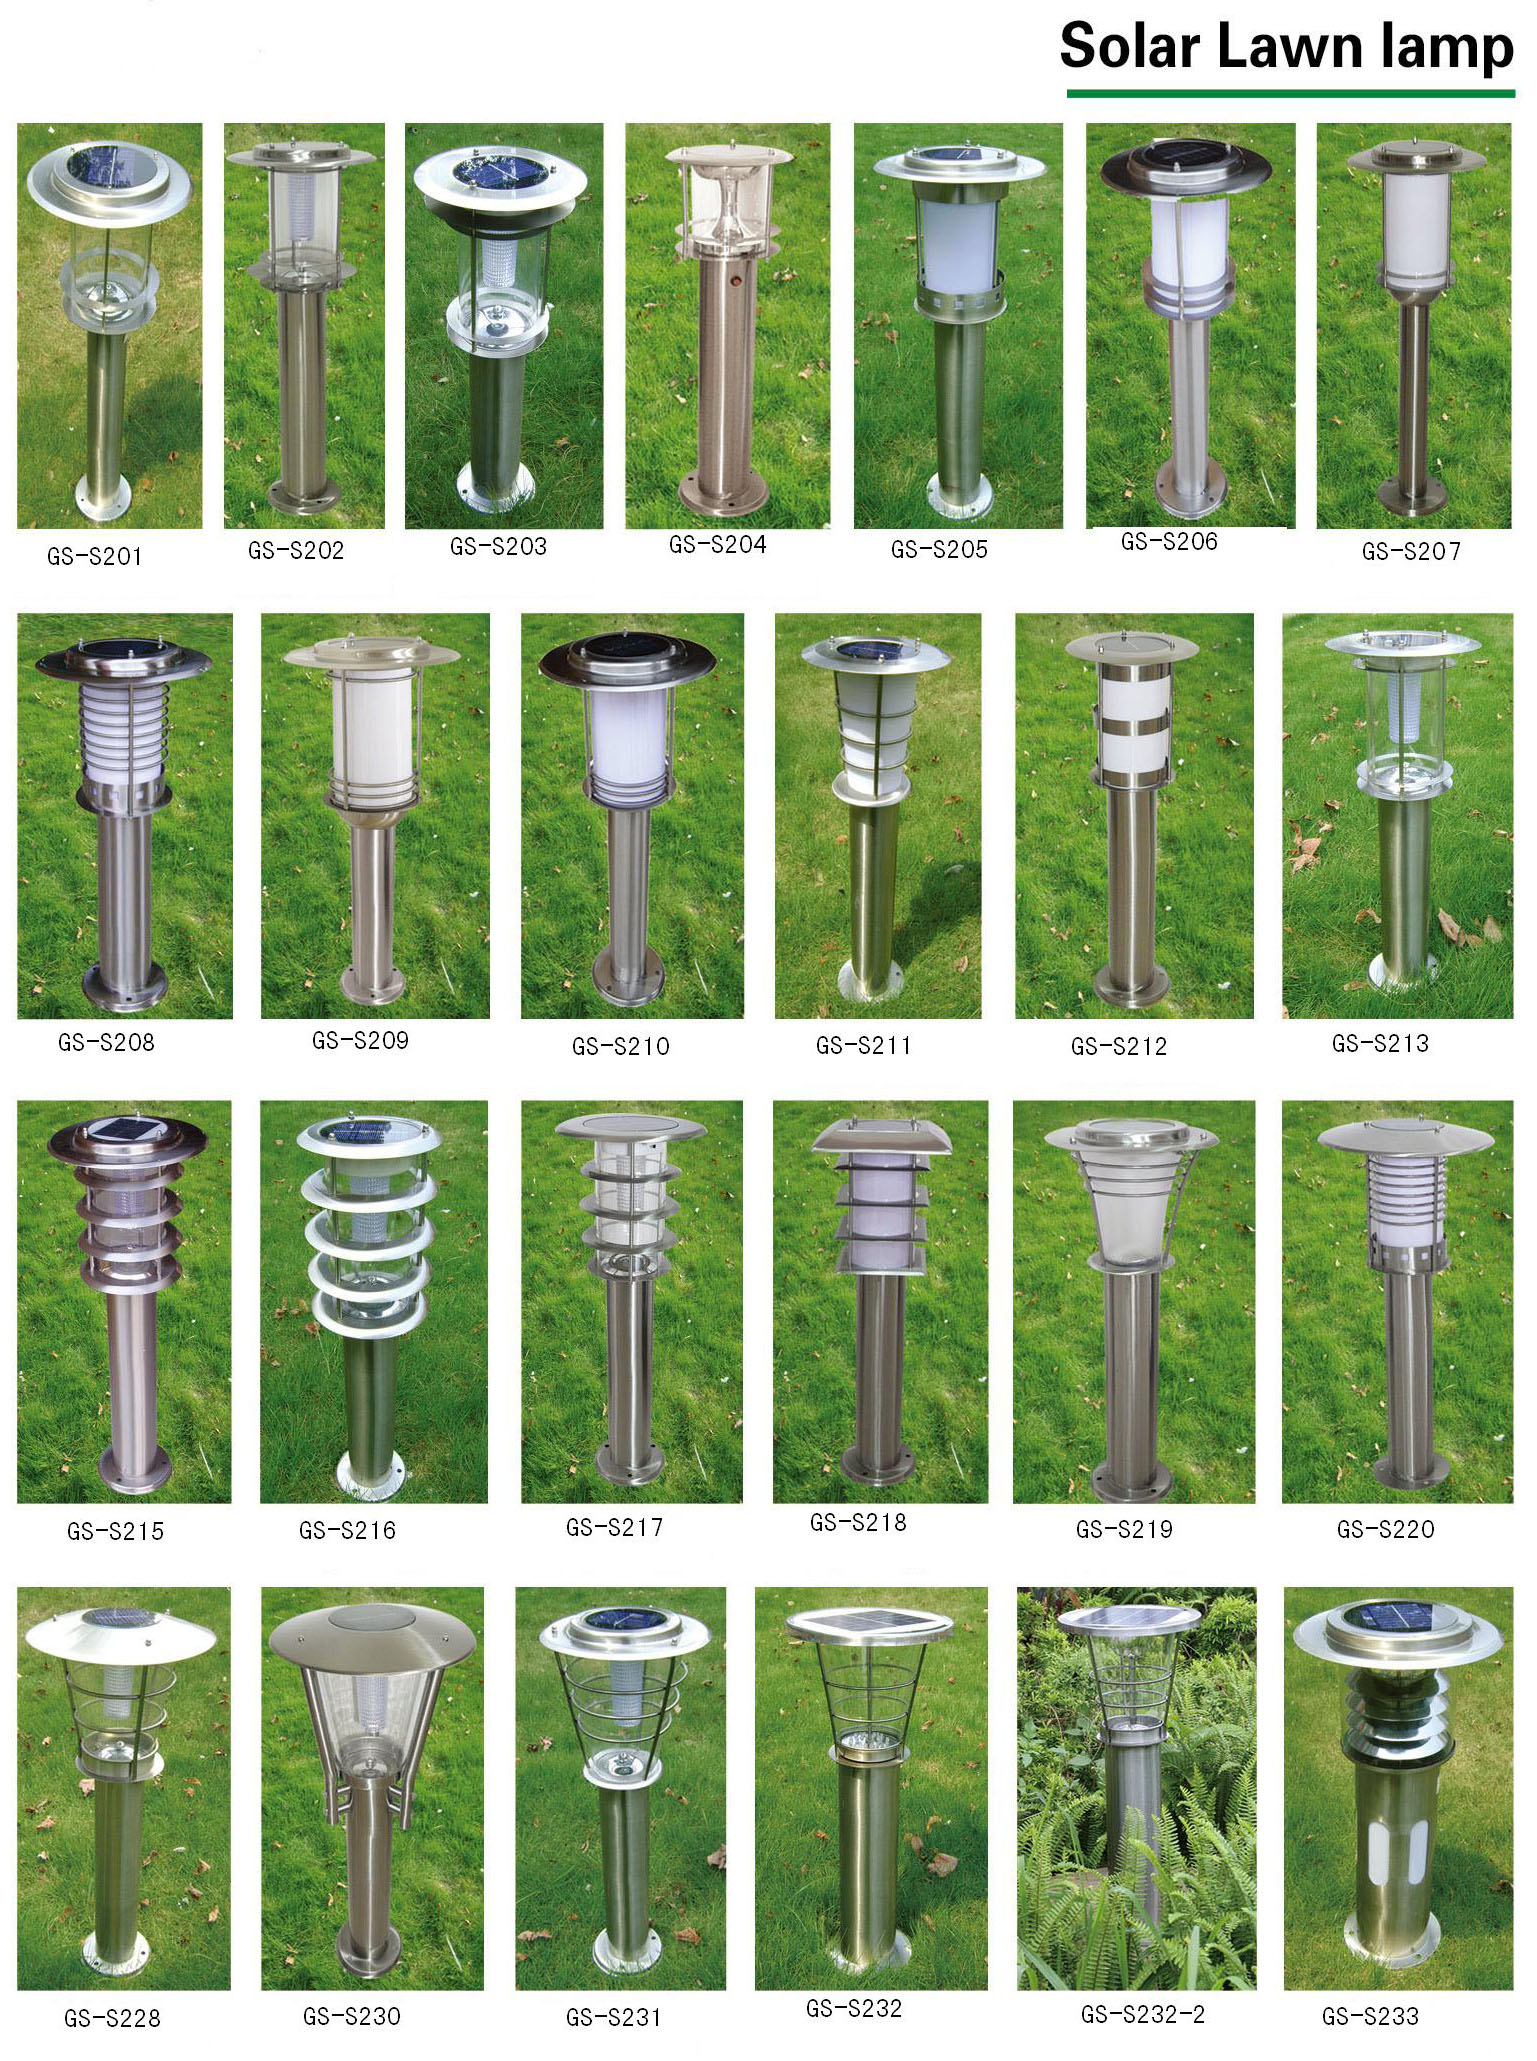 outdoor Landscape light solar Led lawn lamp/light in  yard,parth,garden,street,statium